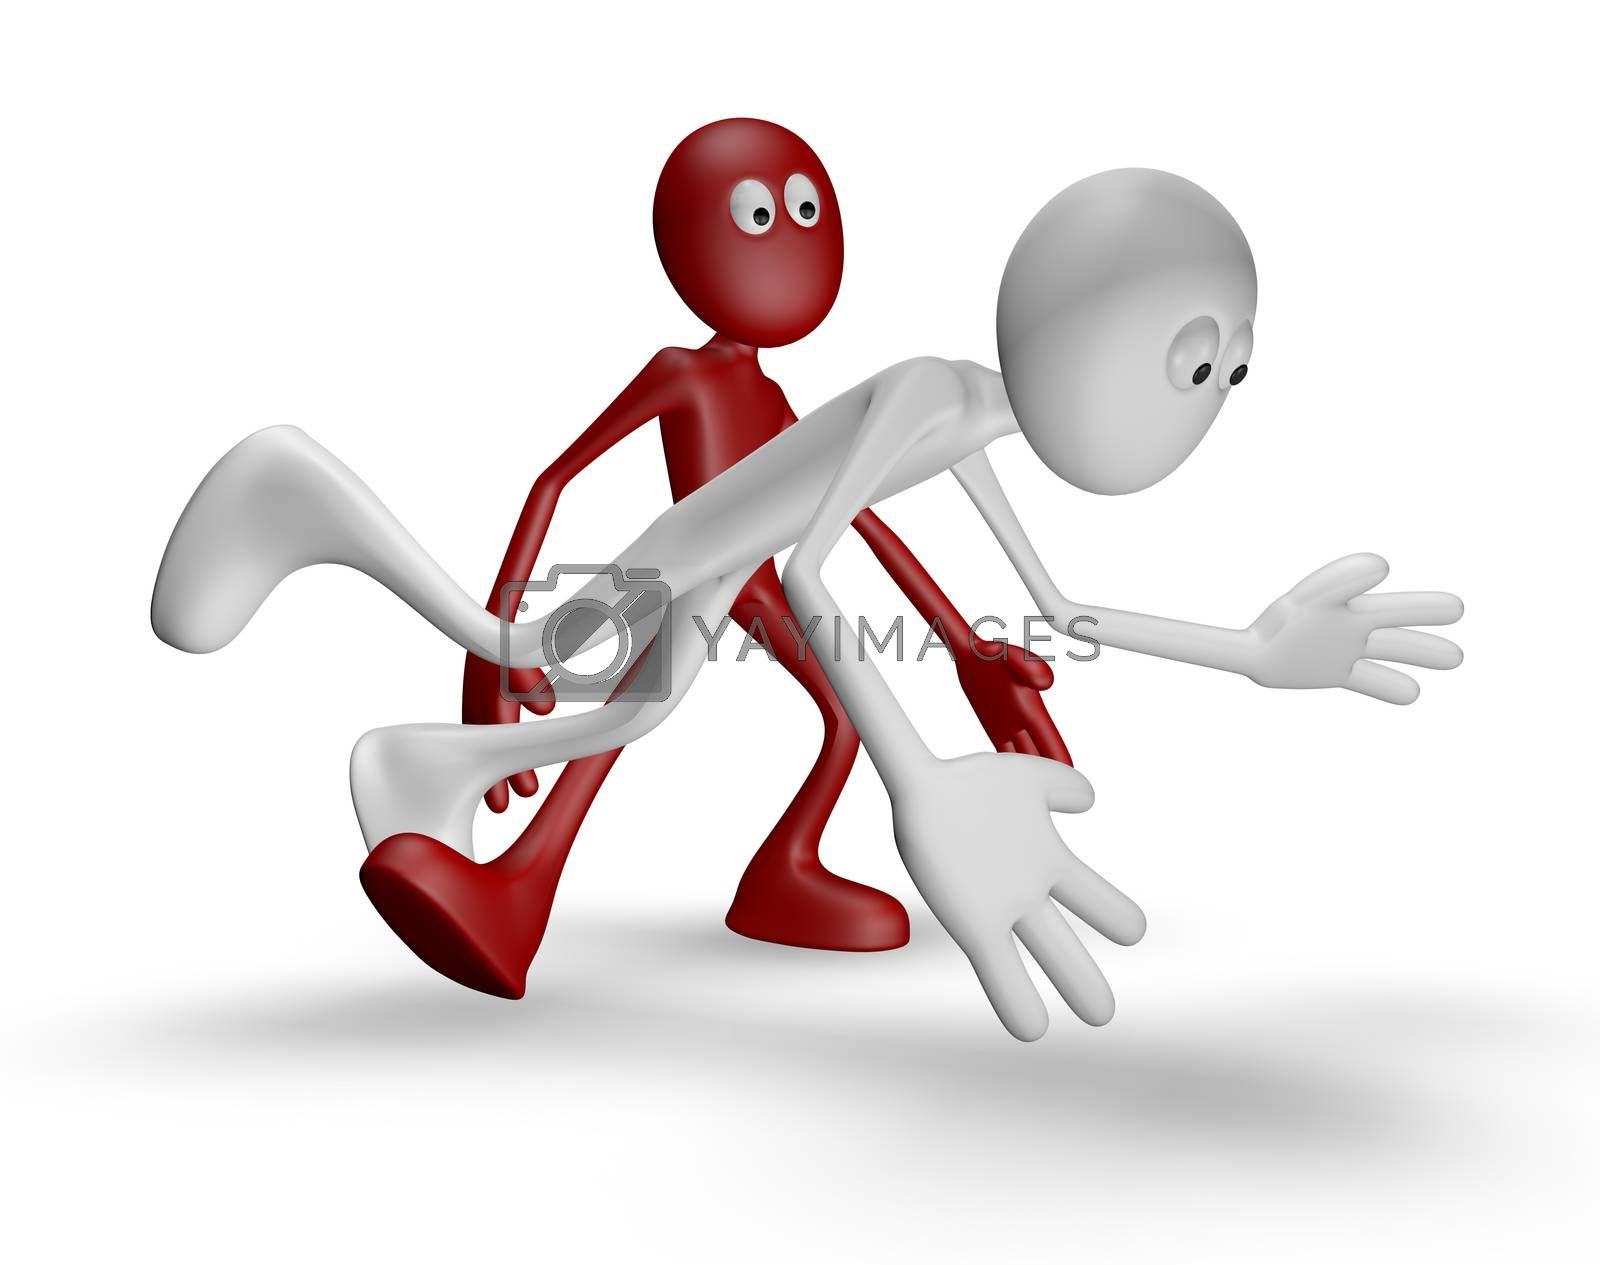 red guy gets white guy to stumble - 3d illustration